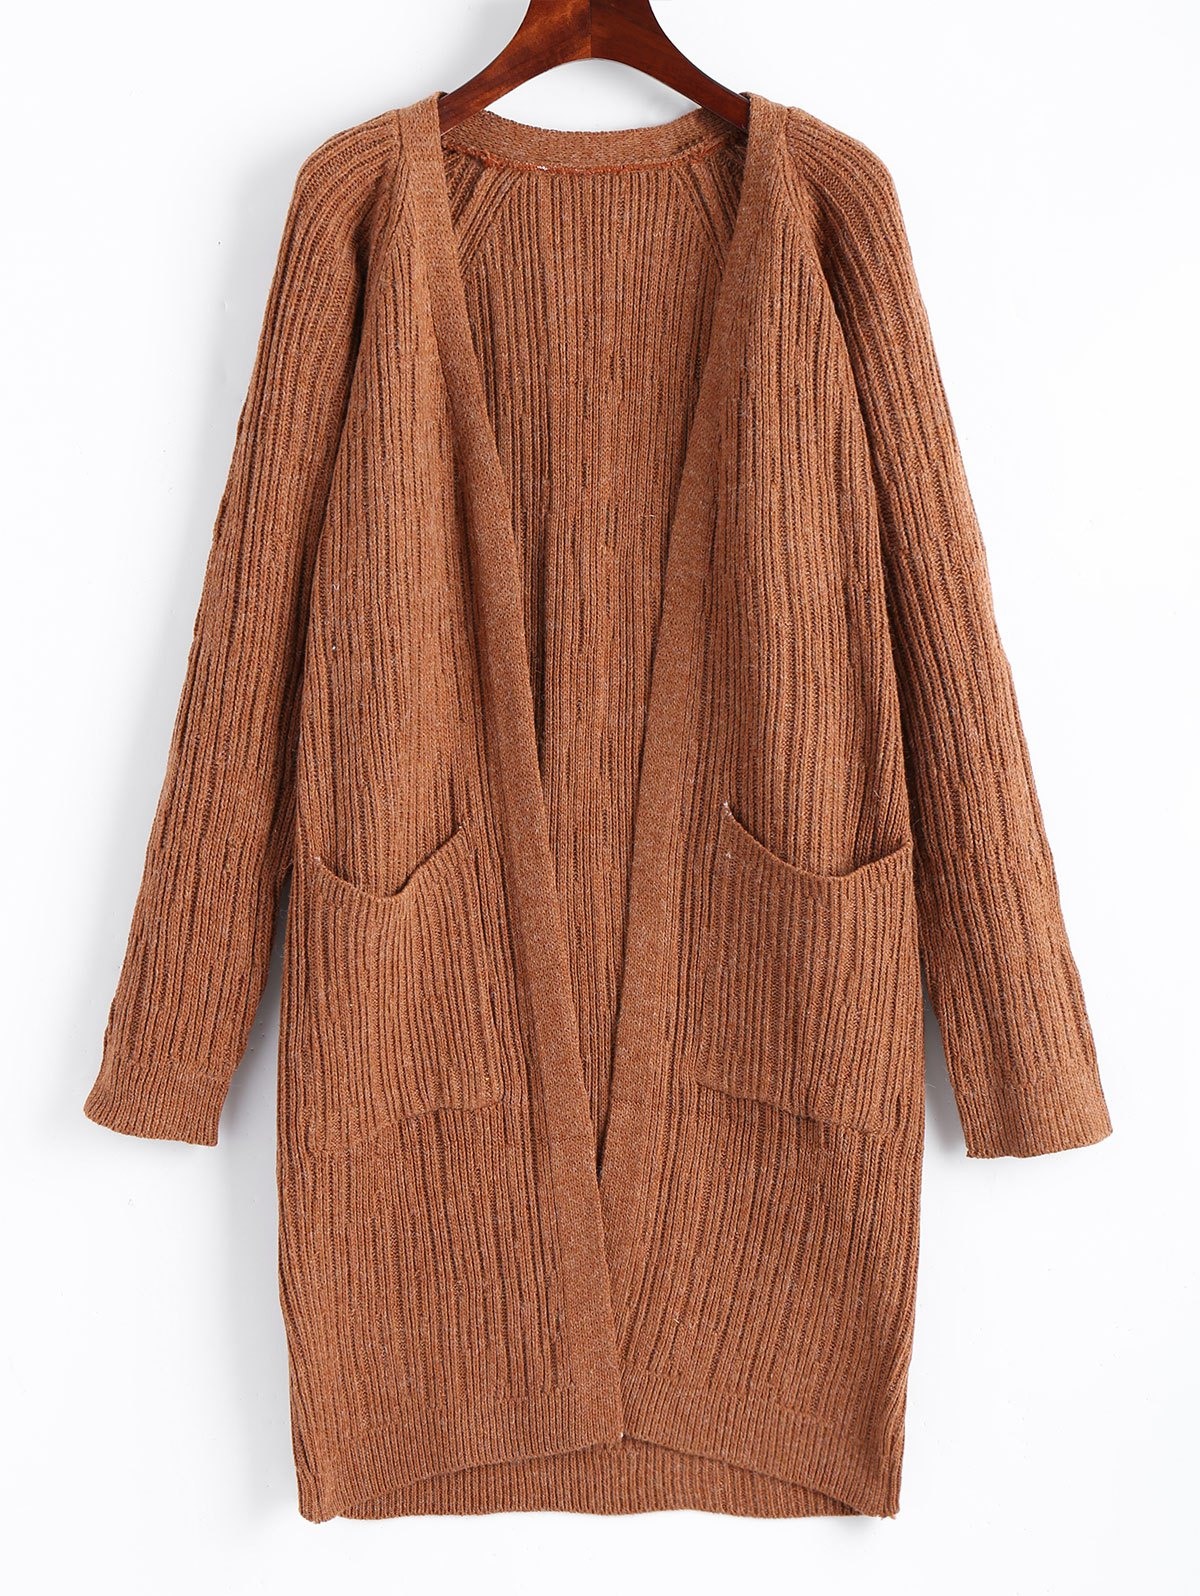 Ribbed Open Front Cardigan with Pockets 233457501